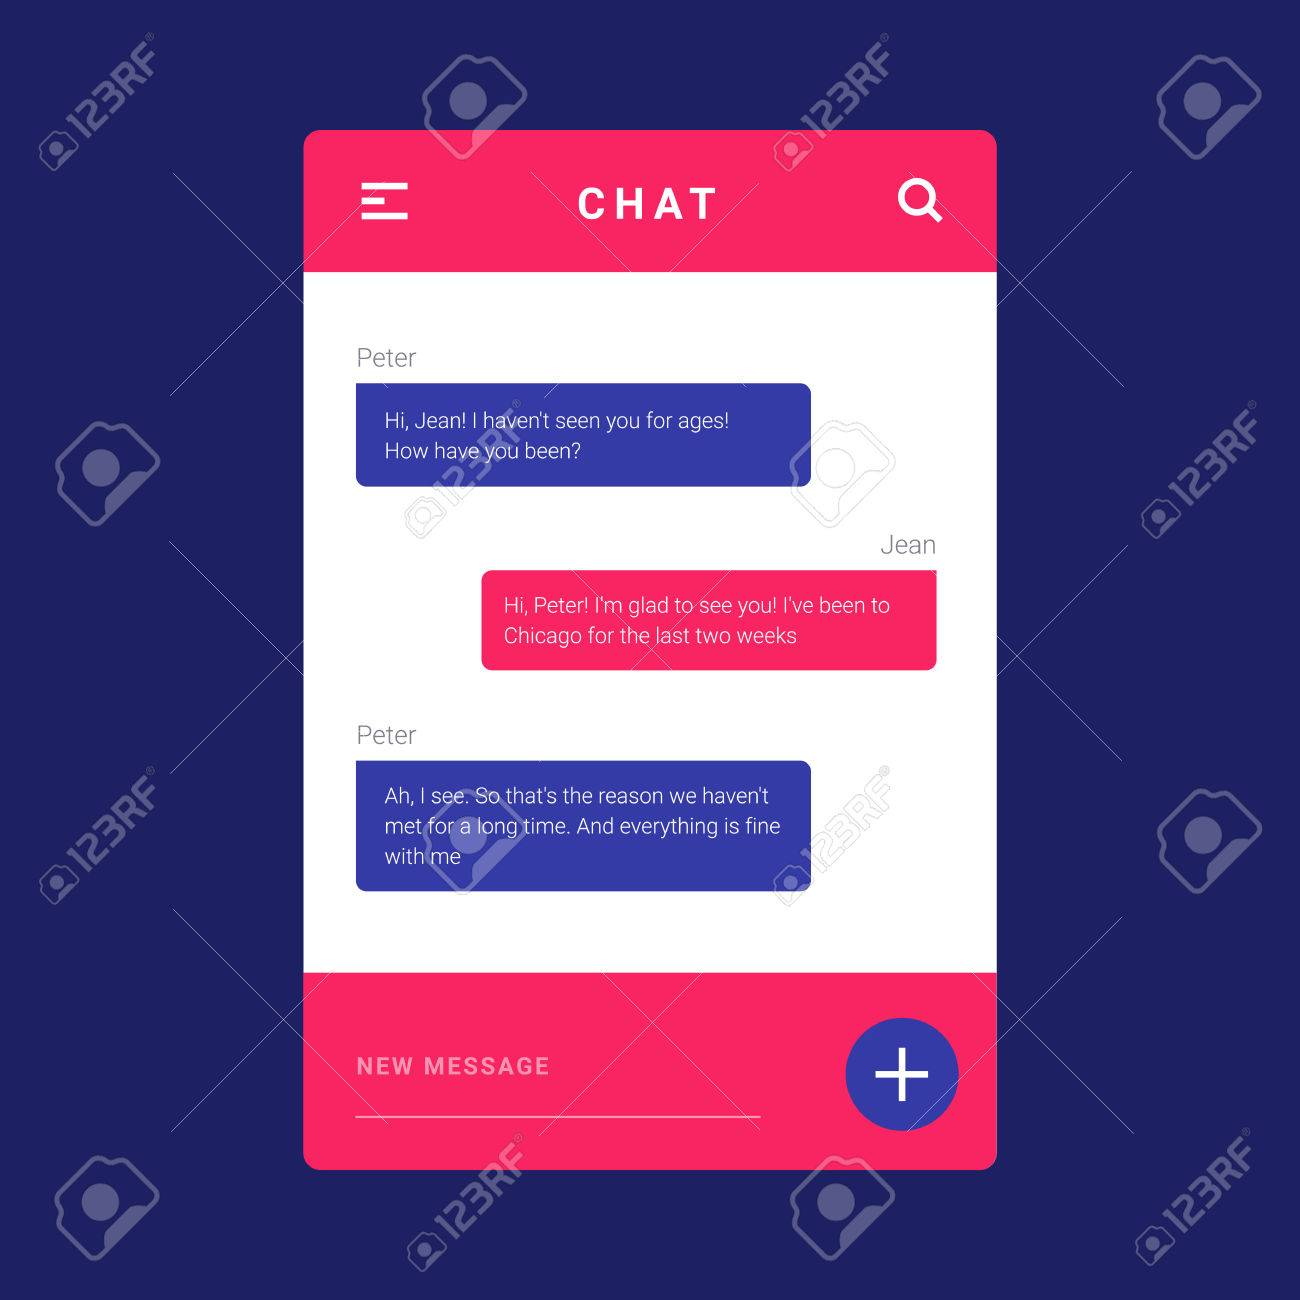 Ui Ux And Gui Template Layout For Mobile Apps Pink And Blue Royalty Free Cliparts Vectors And Stock Illustration Image 64035731